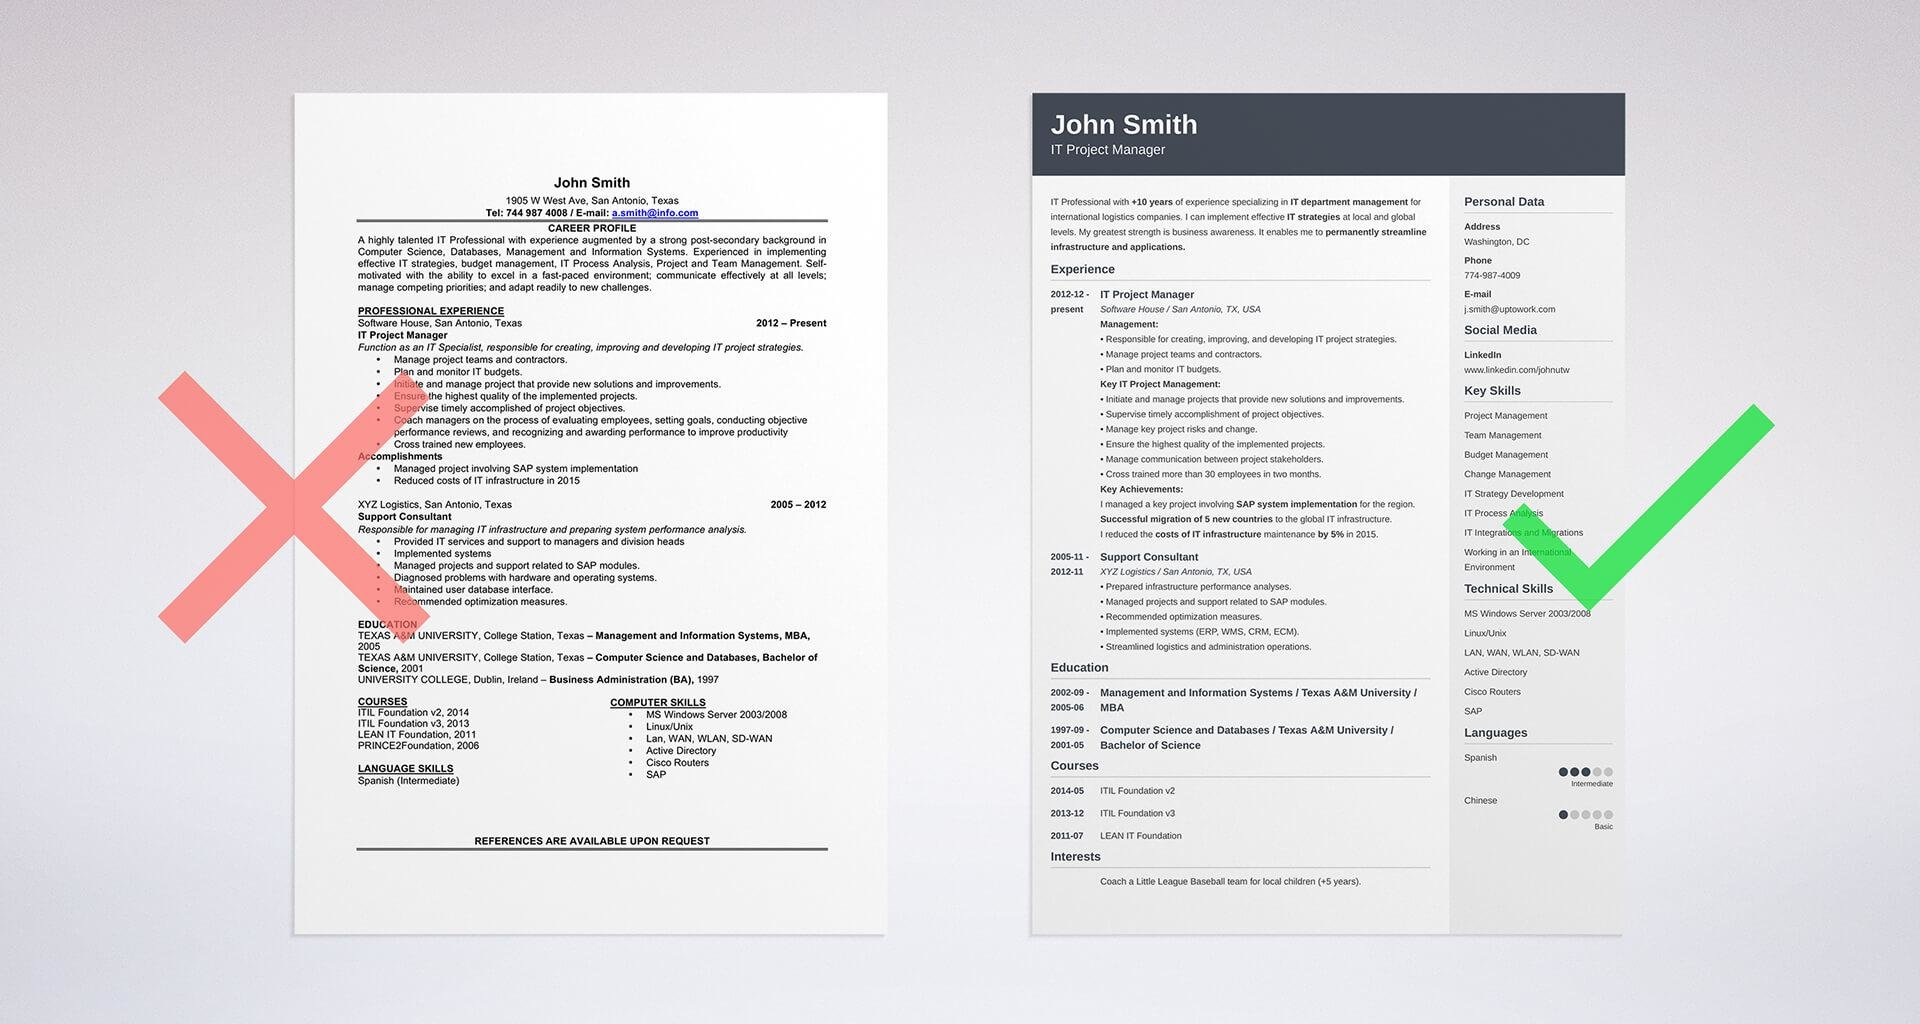 Education On A Resume How To Put Your Education On A Resume Tips & Examples